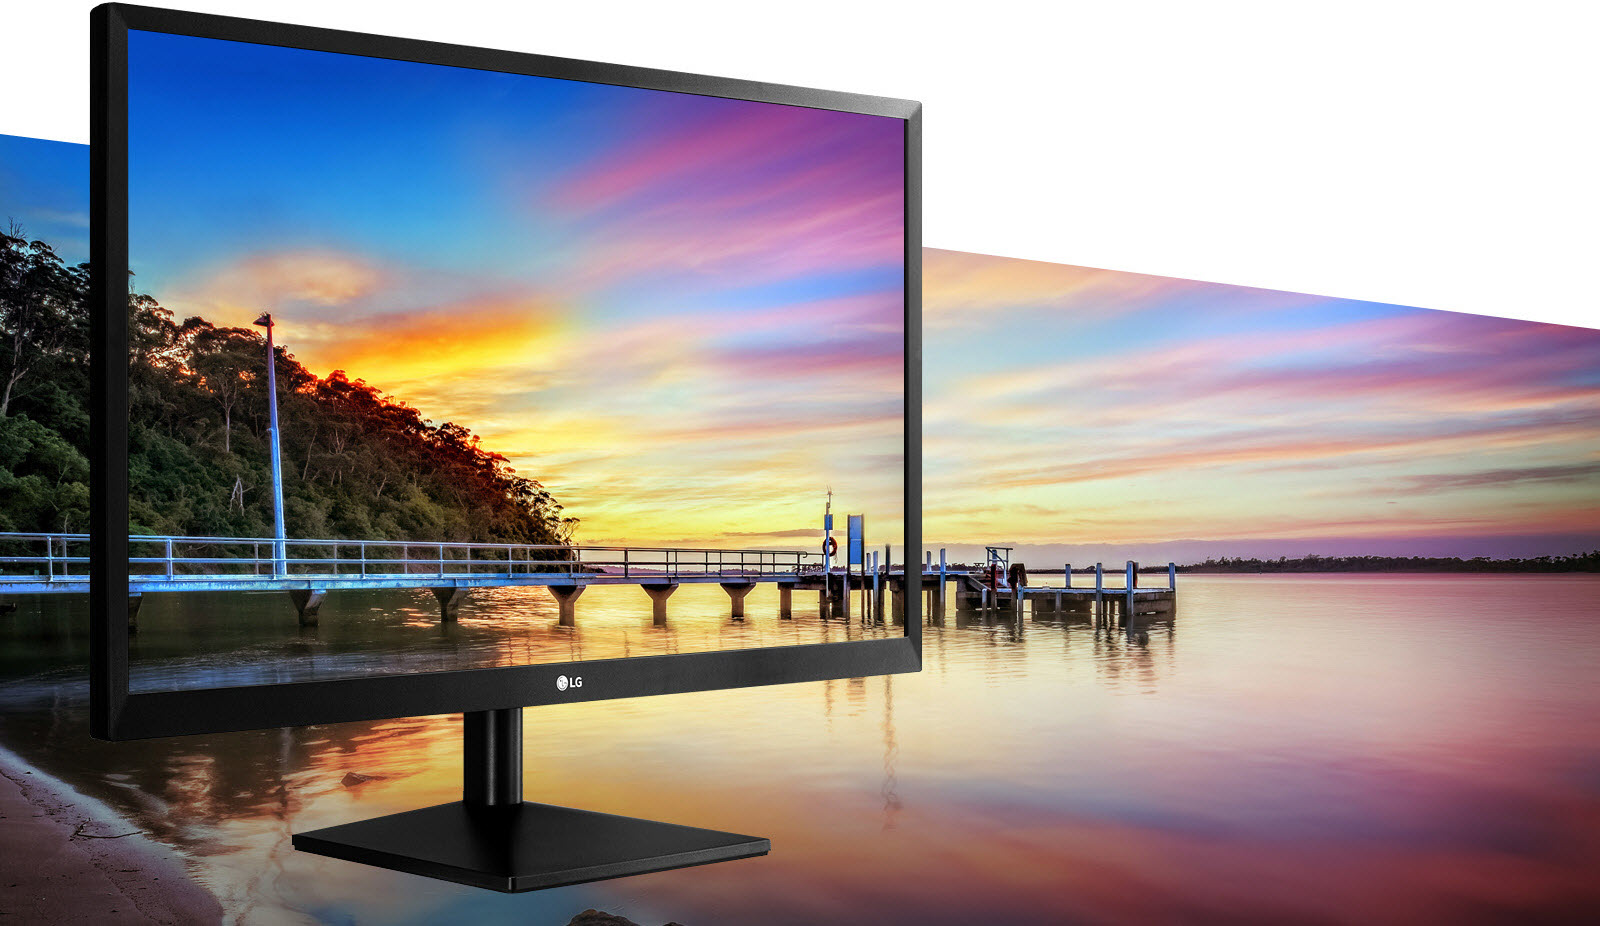 LG Monitor Angled to the Right Blending with the Background Image of a Dock by Water and Trees at a Colorful Twilight hour